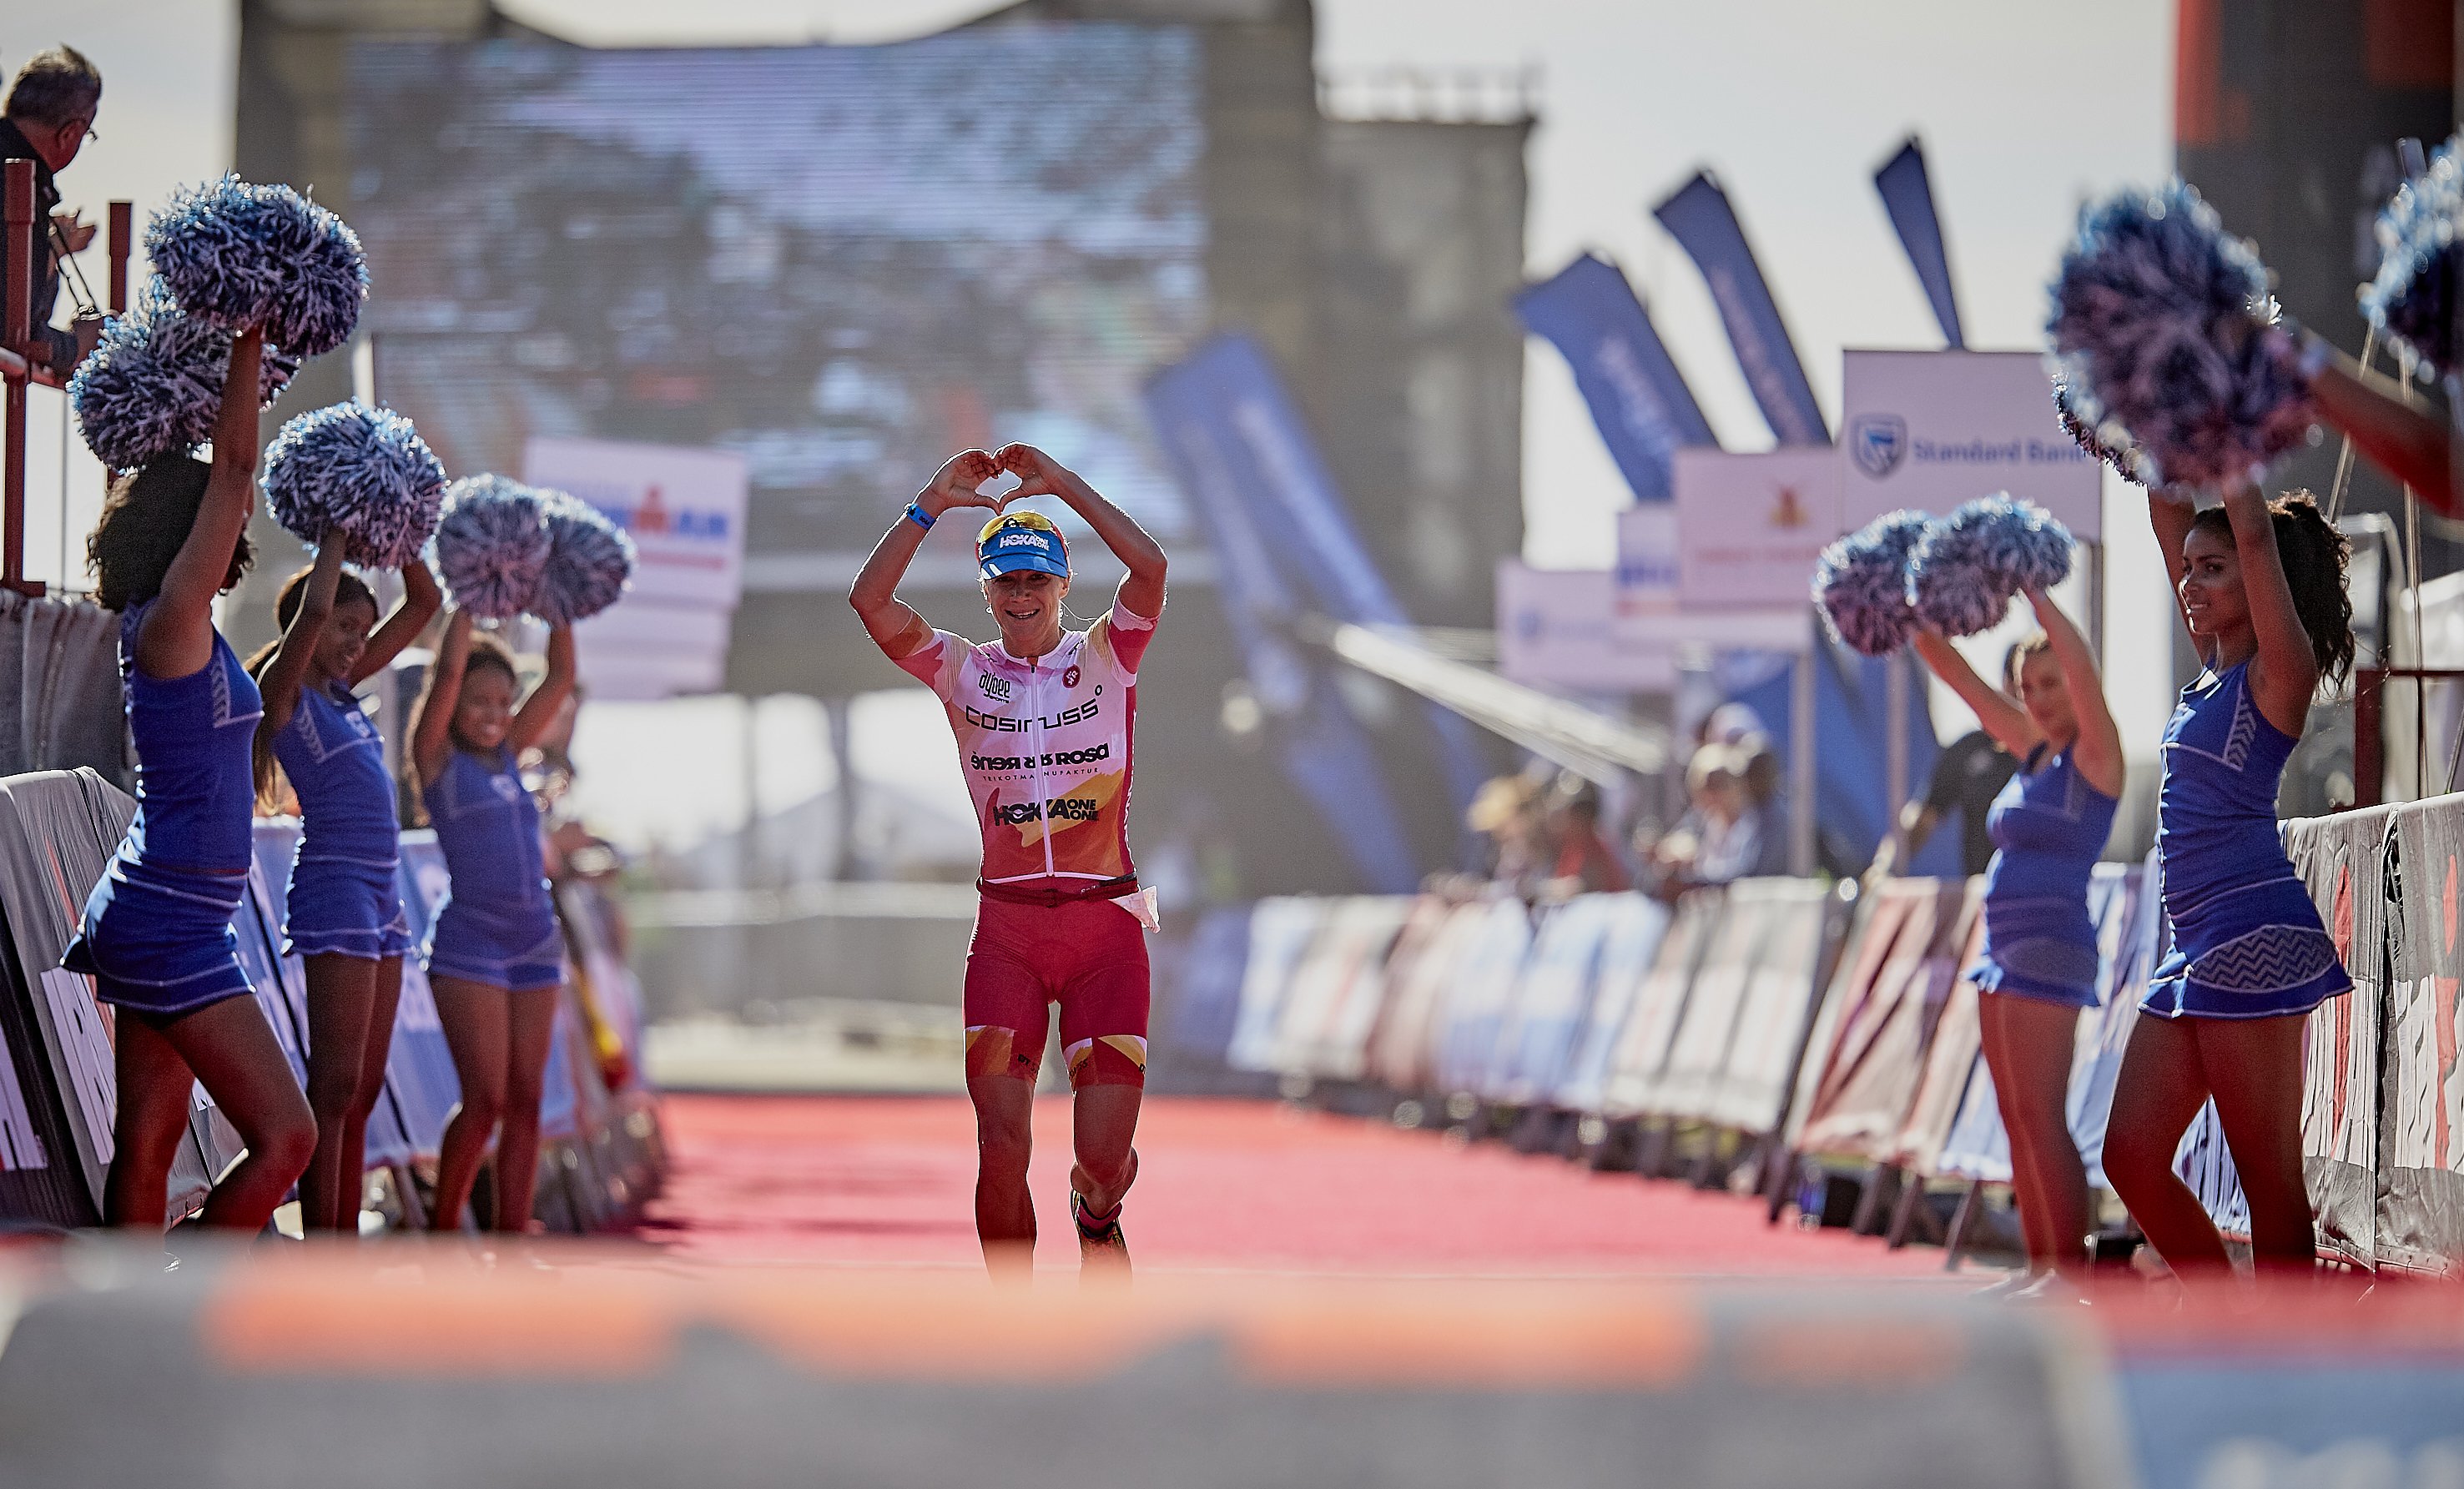 Ironman South Africa - Running down the red carpet